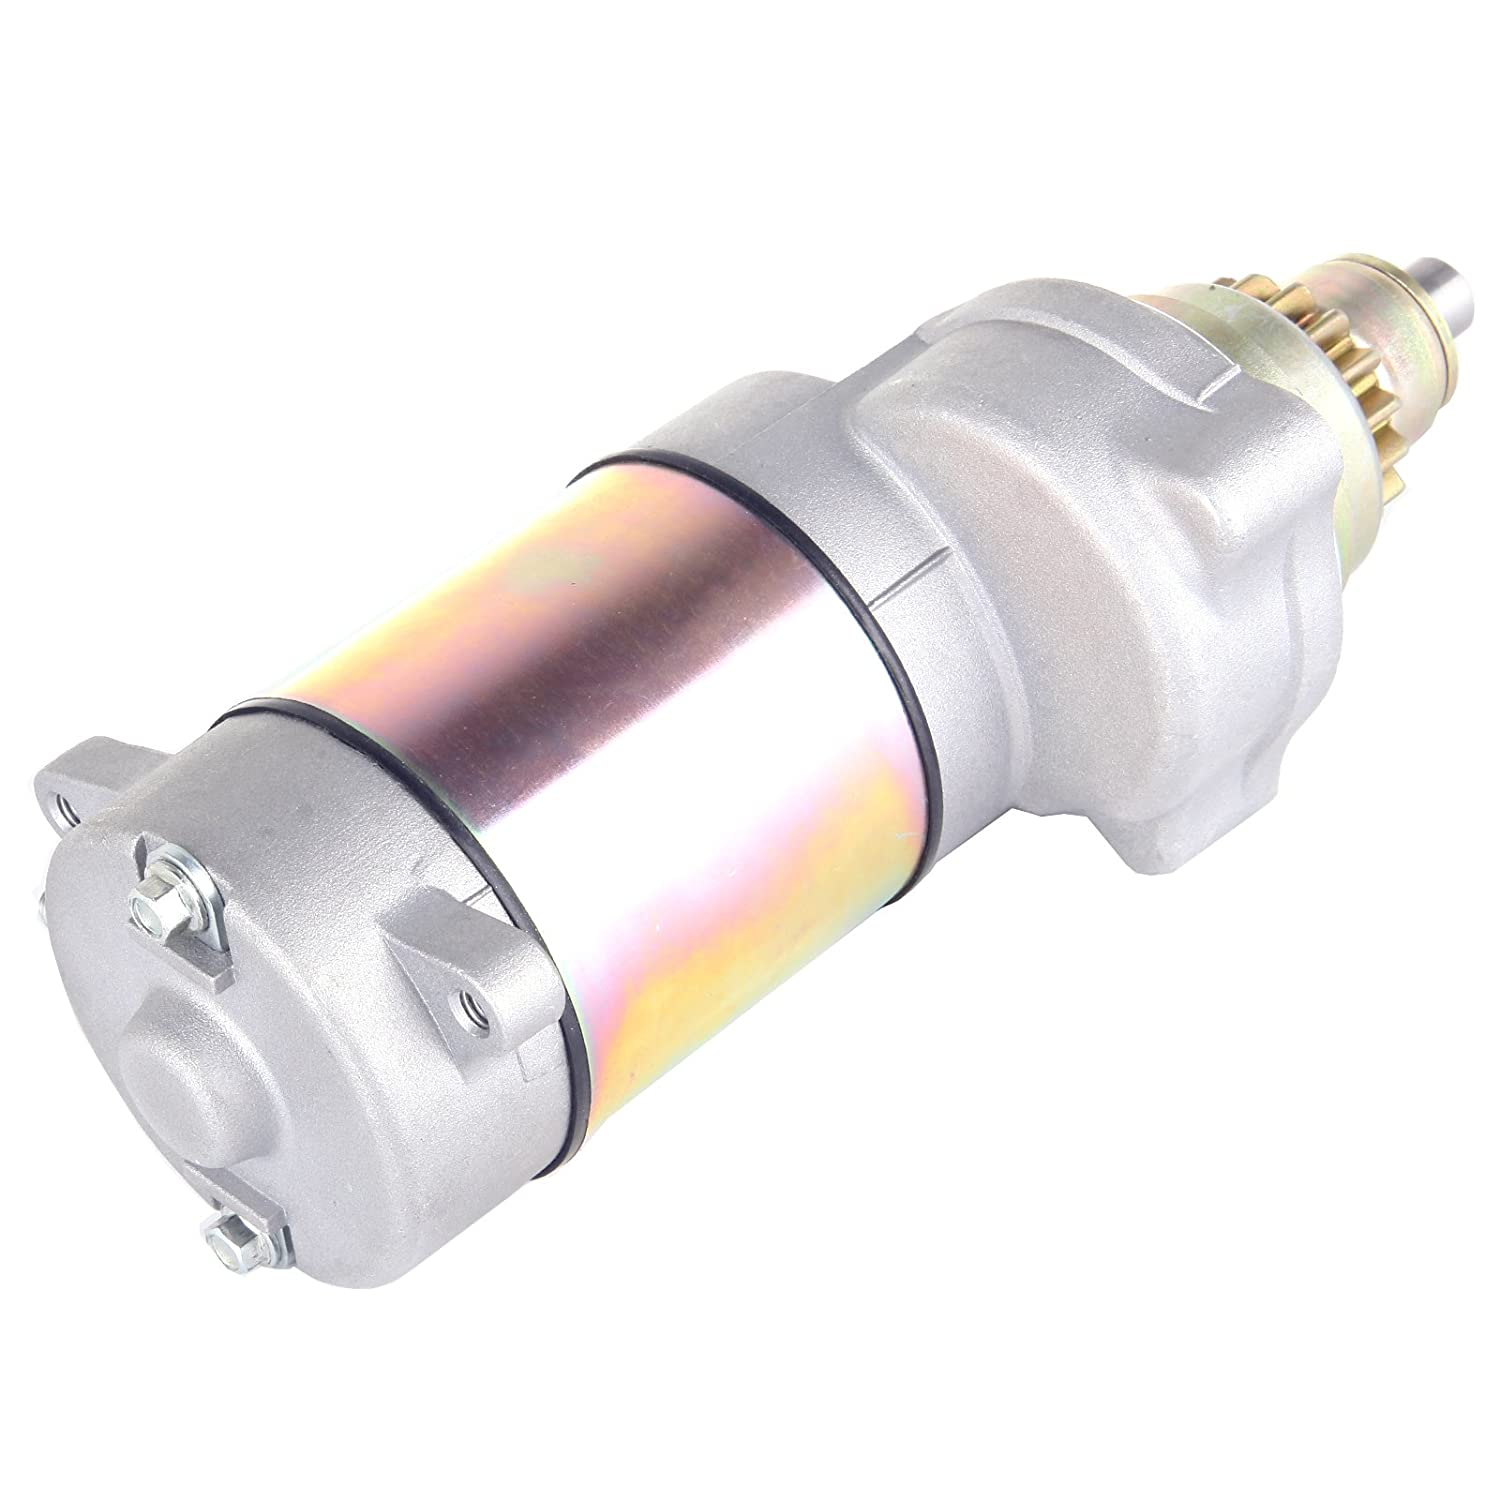 cciyu Brand New Starter fit Drive Polaris 308-5393 358-5393 SM13298 Explorer Xplorer Scrambler 400 4x4 1996-1997 XPRESS 400 1995-2002 POLARIS XPRESS 300